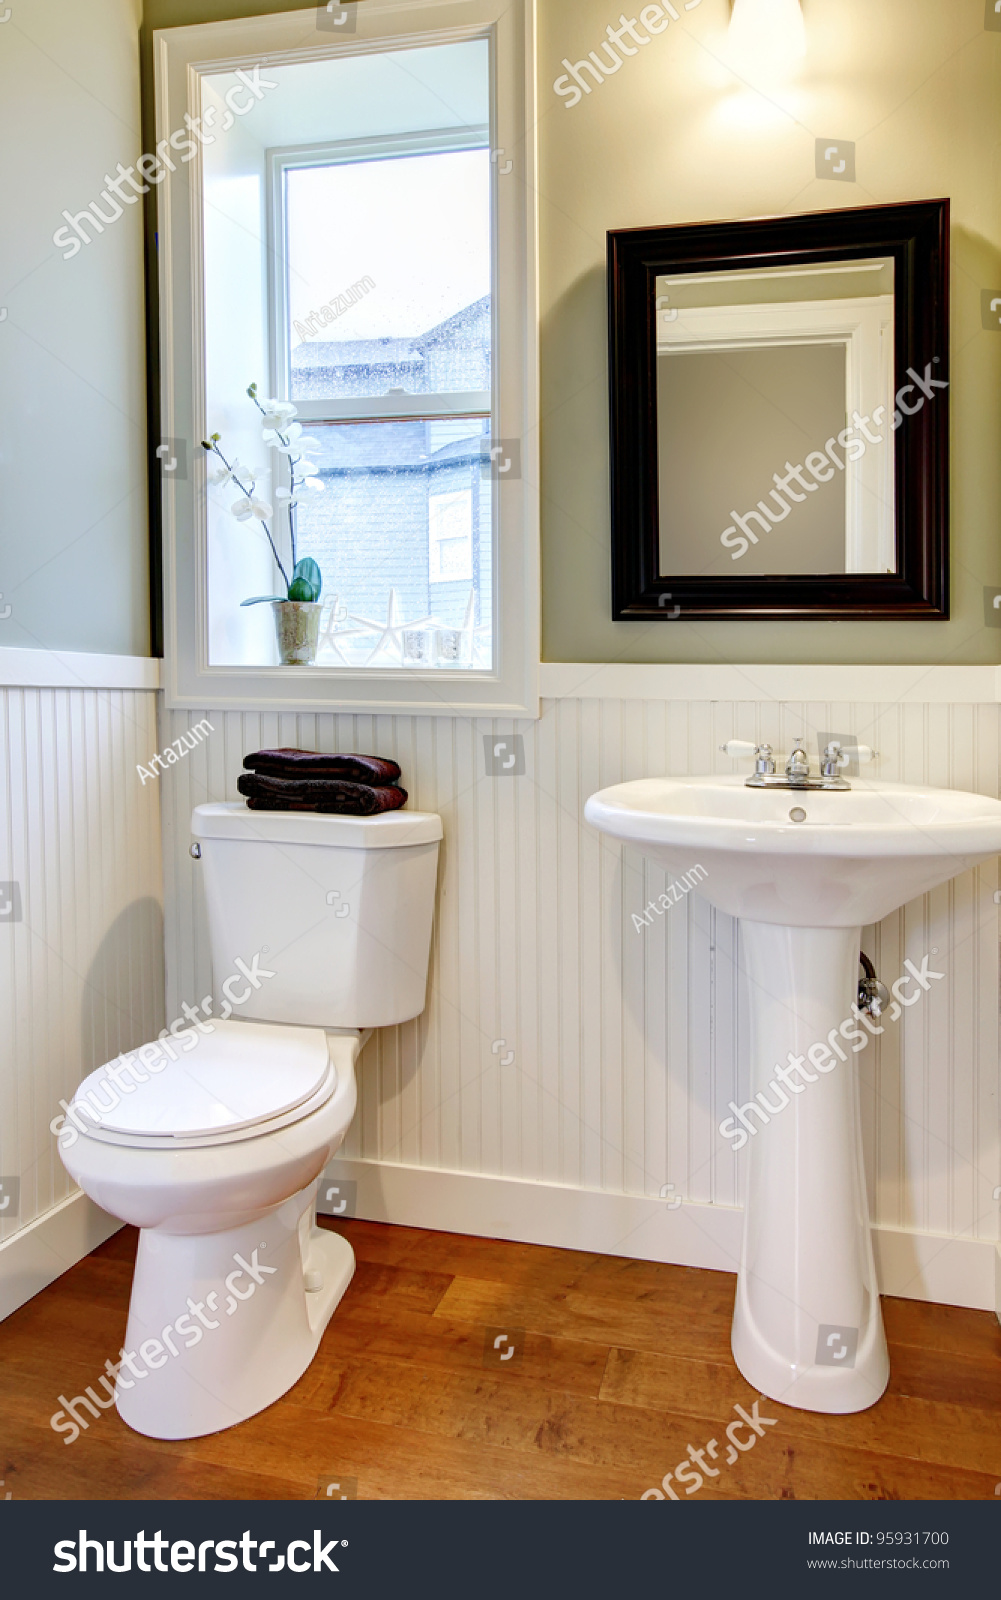 Nice small new simple and elegant bathroom stock photo for Nice small bathrooms